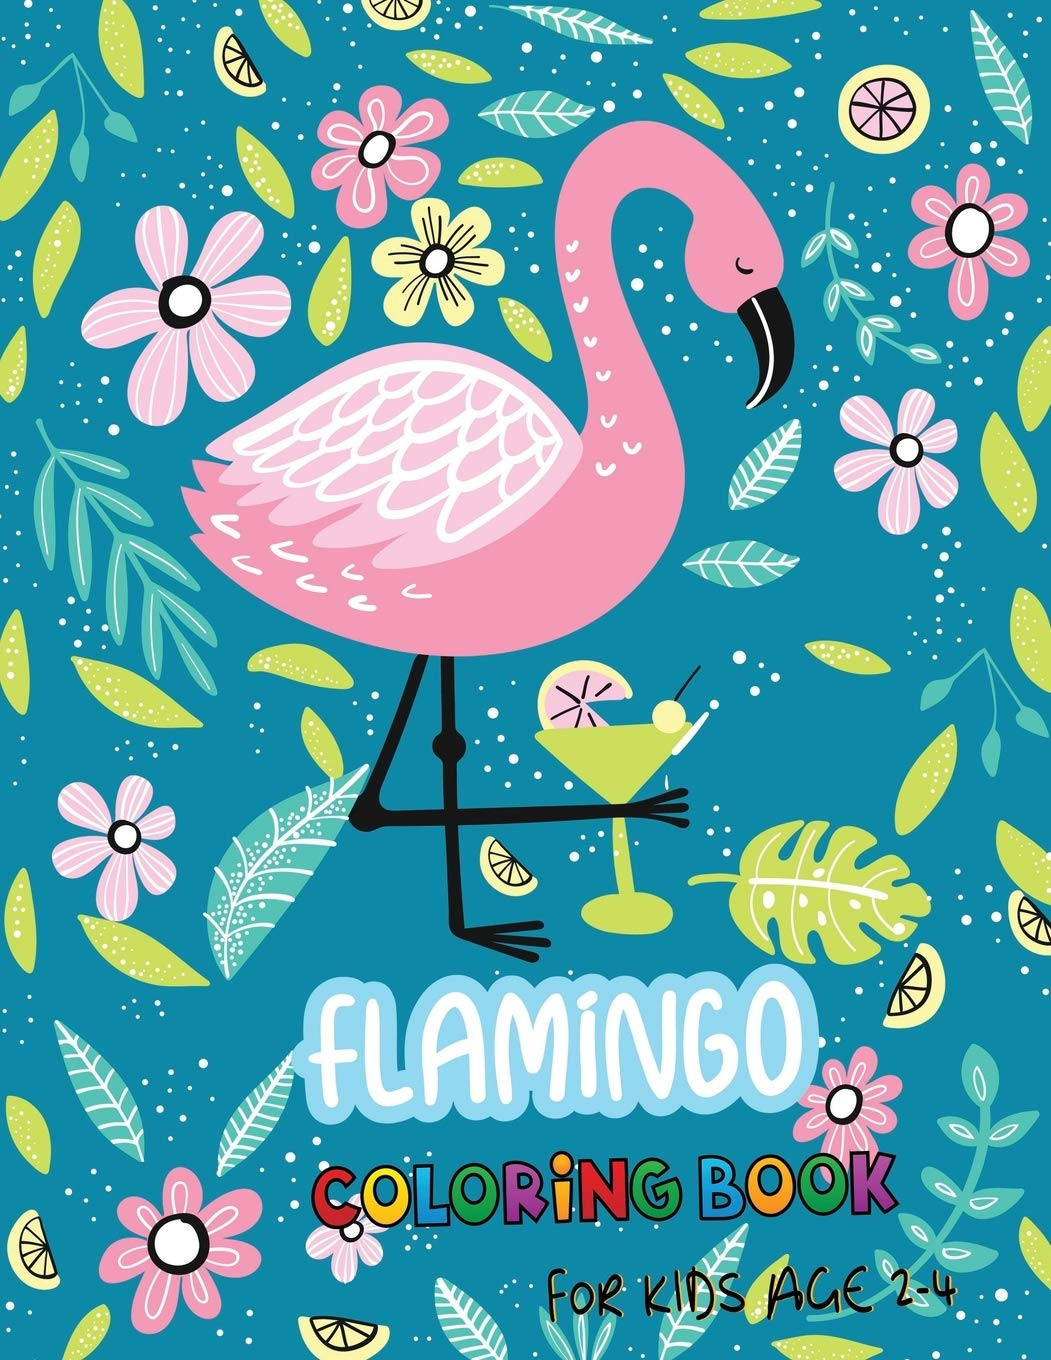 Flamingo Coloring Book For Kids Age 2 4 30 Challenging Coloring Page Cute Flamingo Amazon Co Uk Holland Michelle 9781687271174 Books